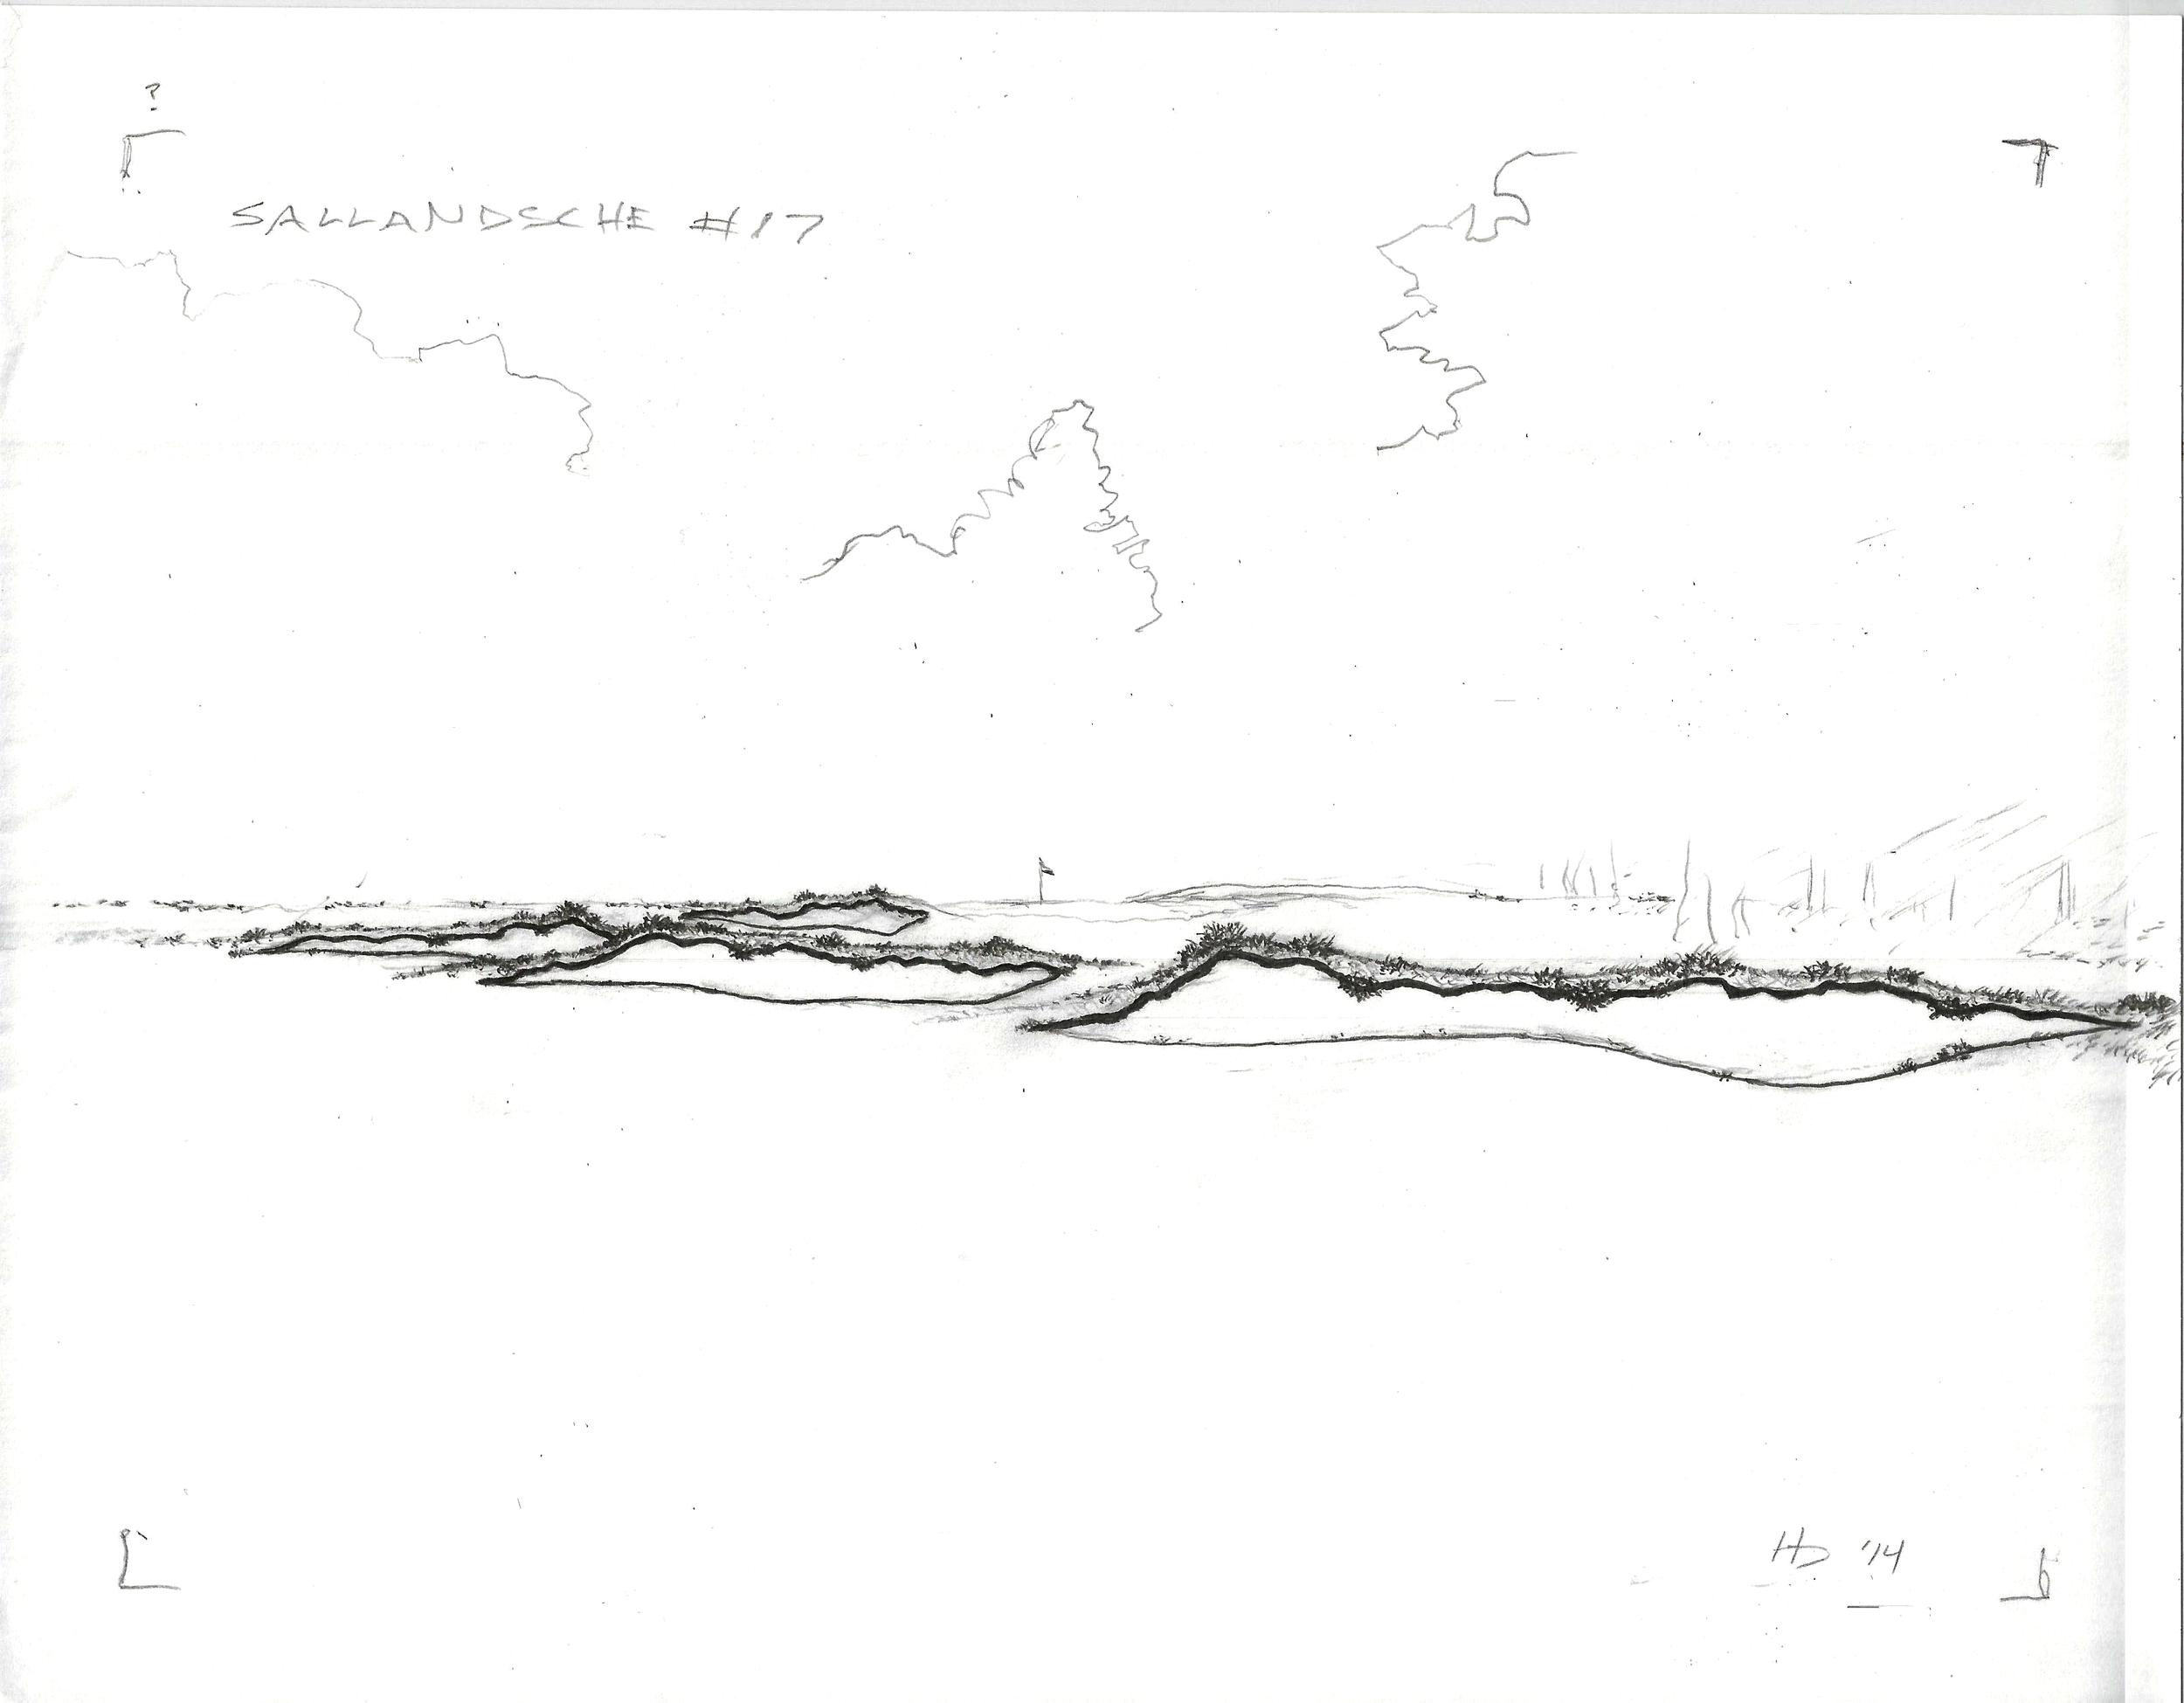 Proposed stylistic rendering for the bunker work at Sallandsche.  The style called for flashed sand with naturally textured edges and a horizontal nature fitting of the site.